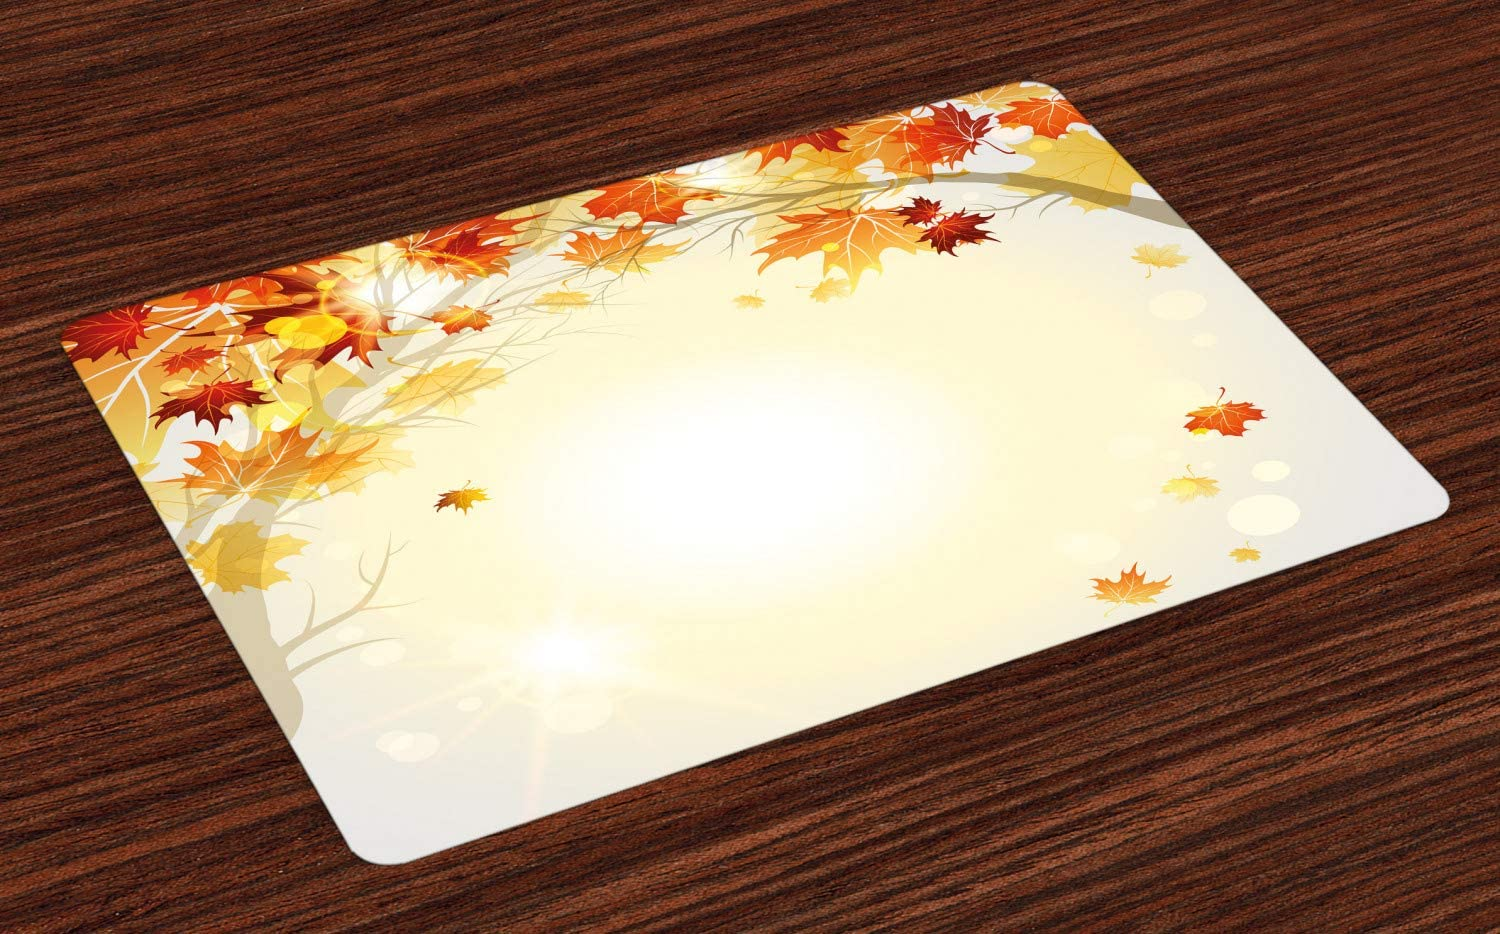 Ambesonne Fall Place Mats Set of 4, Soft Image of Faded Shedding Fall Leaves from Tree Motion in Nature Concept Print, Washable Fabric Placemats for Dining Room Kitchen Table Decor, Orange Yellow